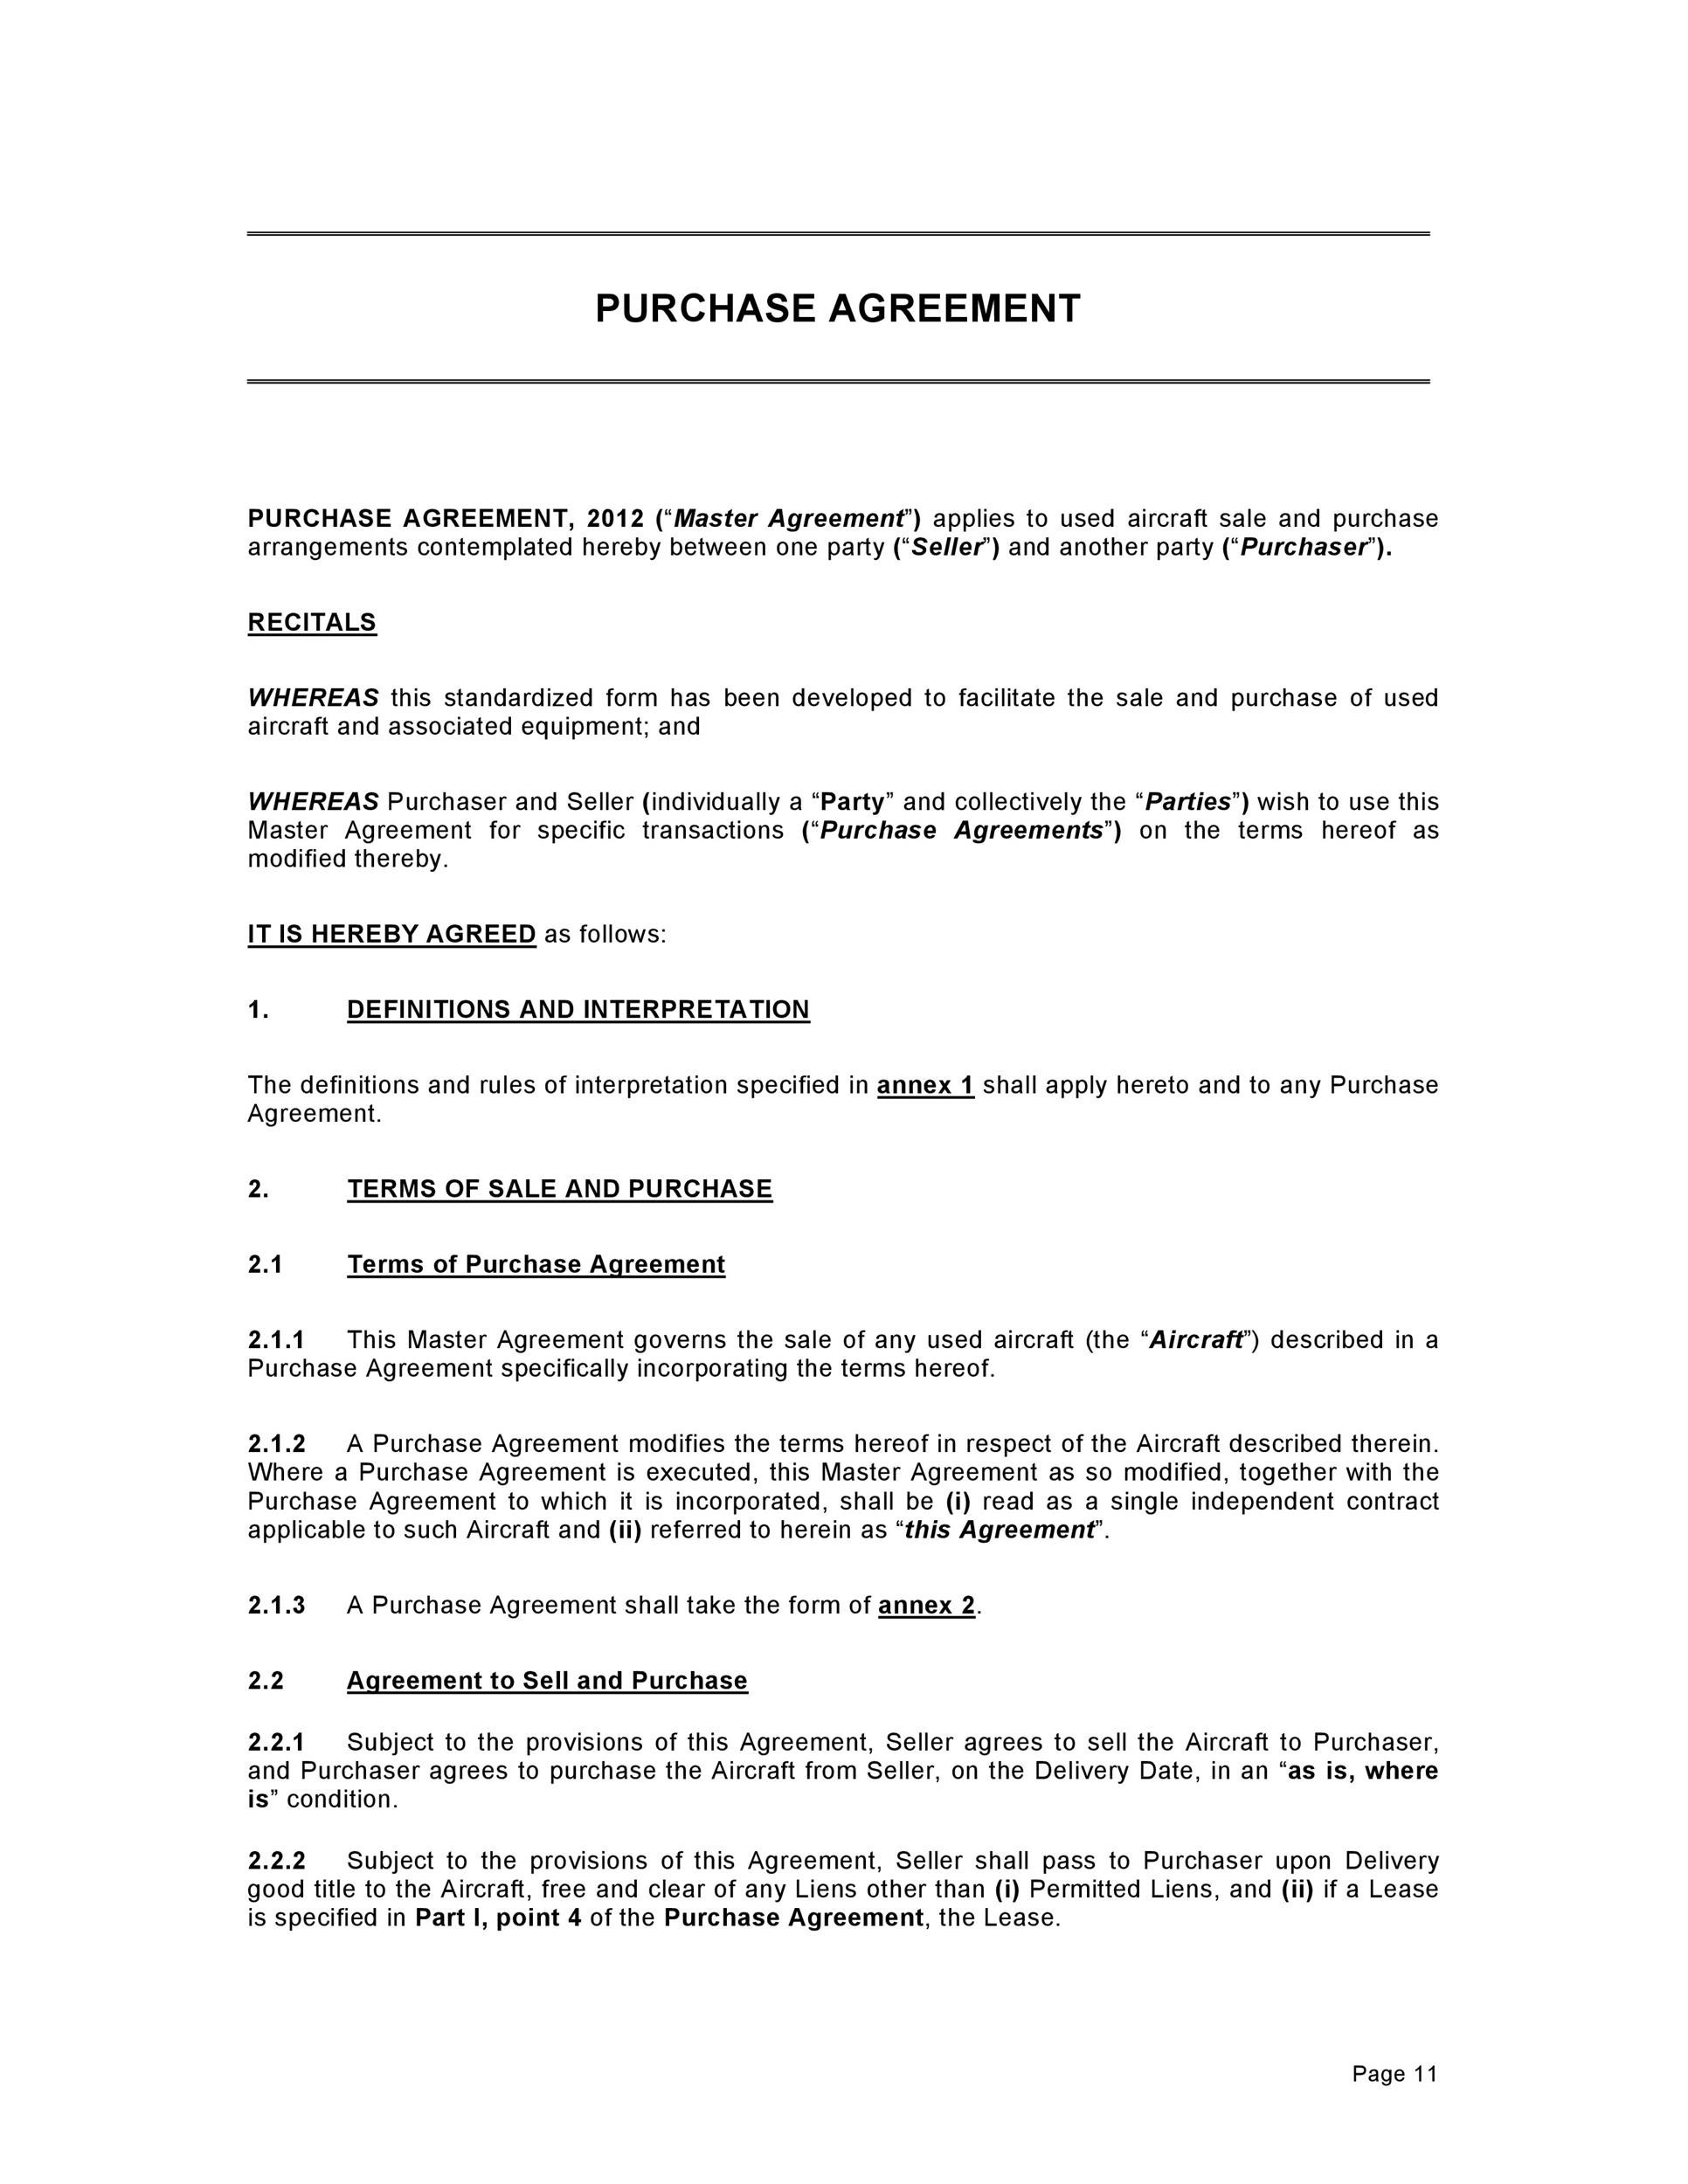 37 simple purchase agreement templates real estate business free purchase agreement template 11 friedricerecipe Choice Image